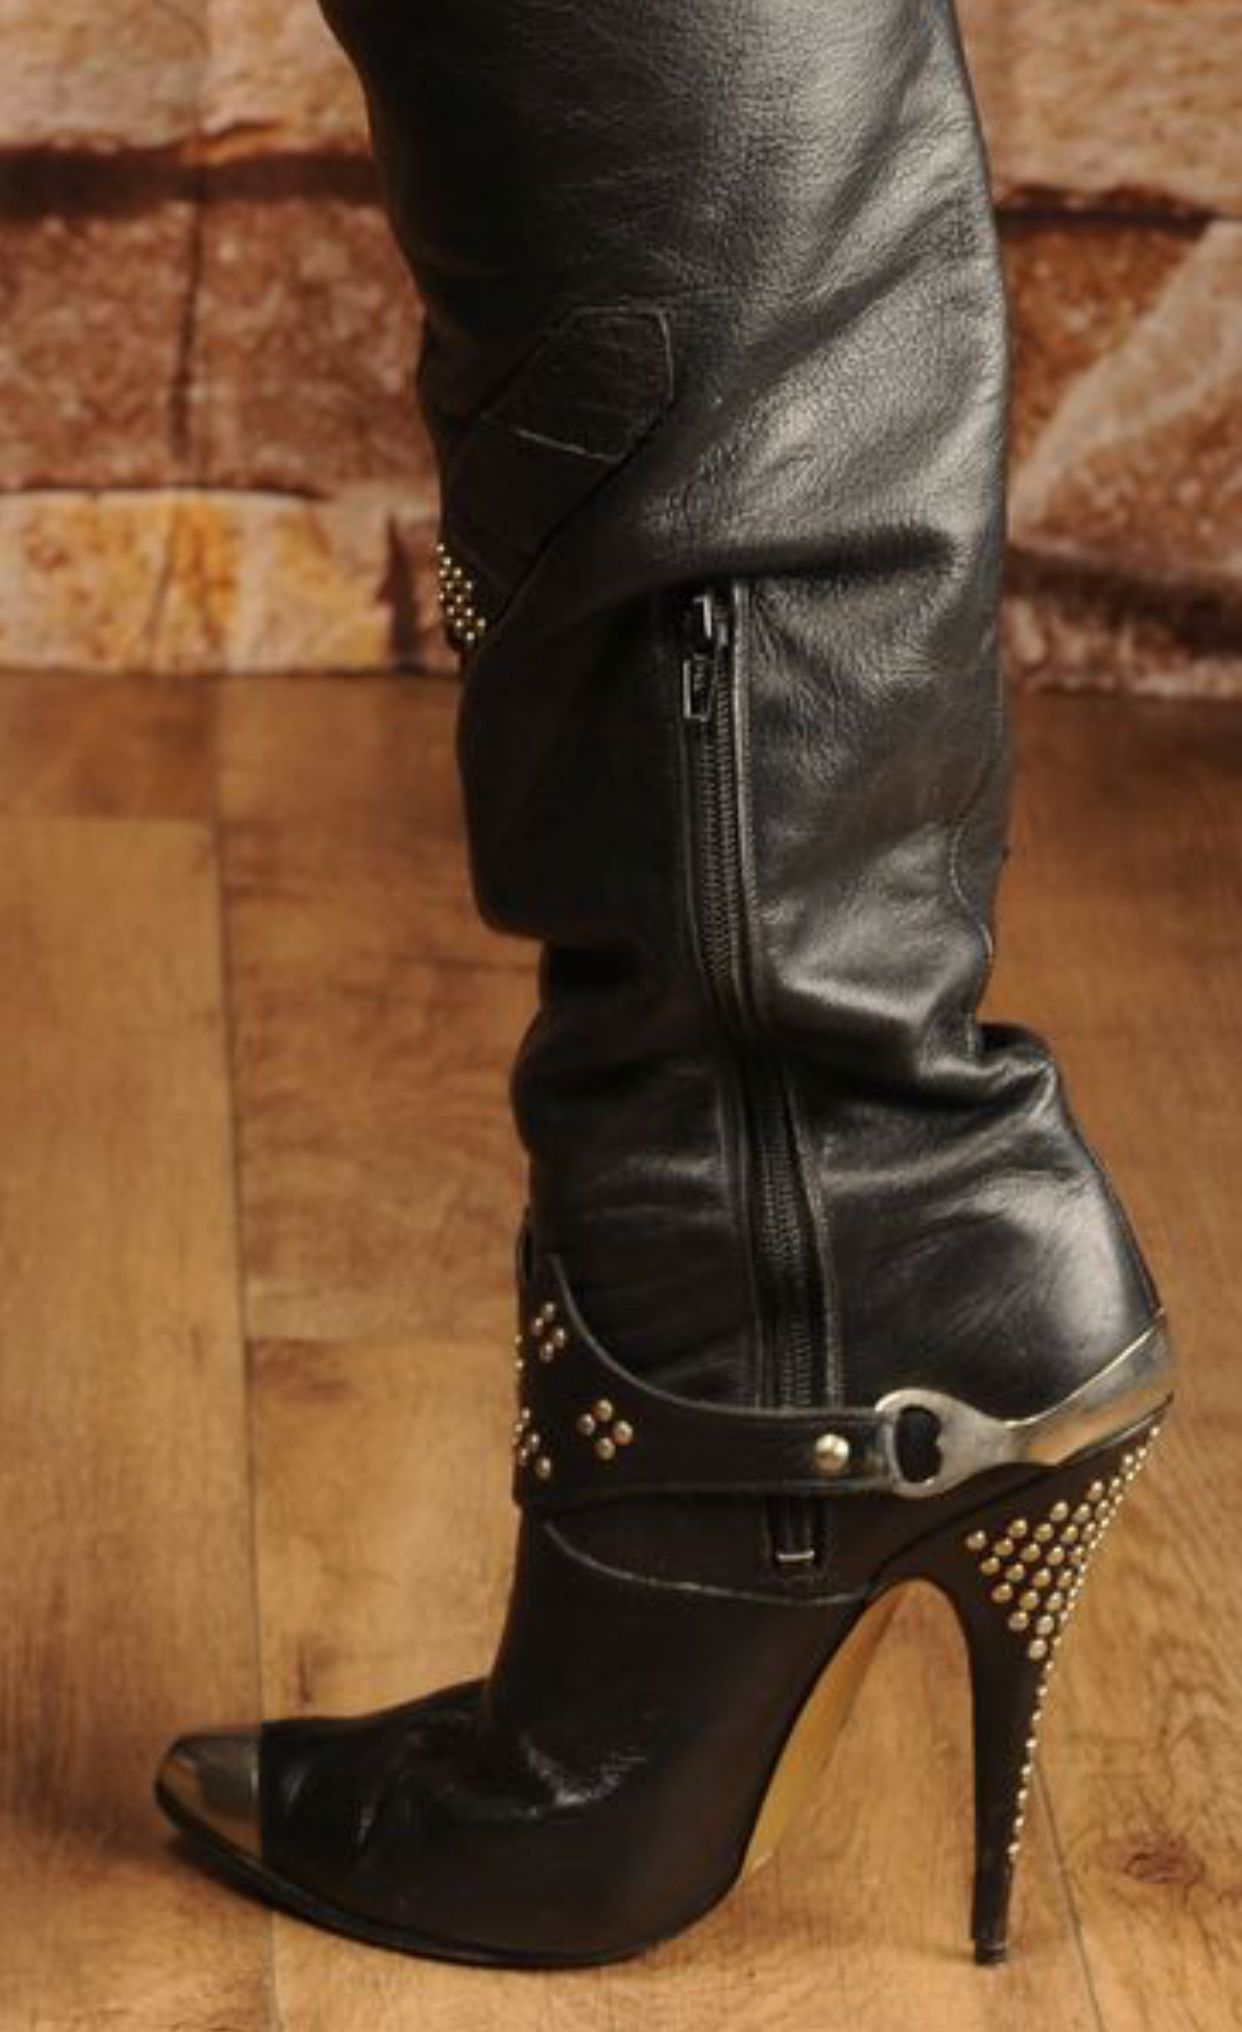 c9a94a9182e41 80s style boots, #SavannahJames #rock #Retro80s | Mistress | Thigh ...